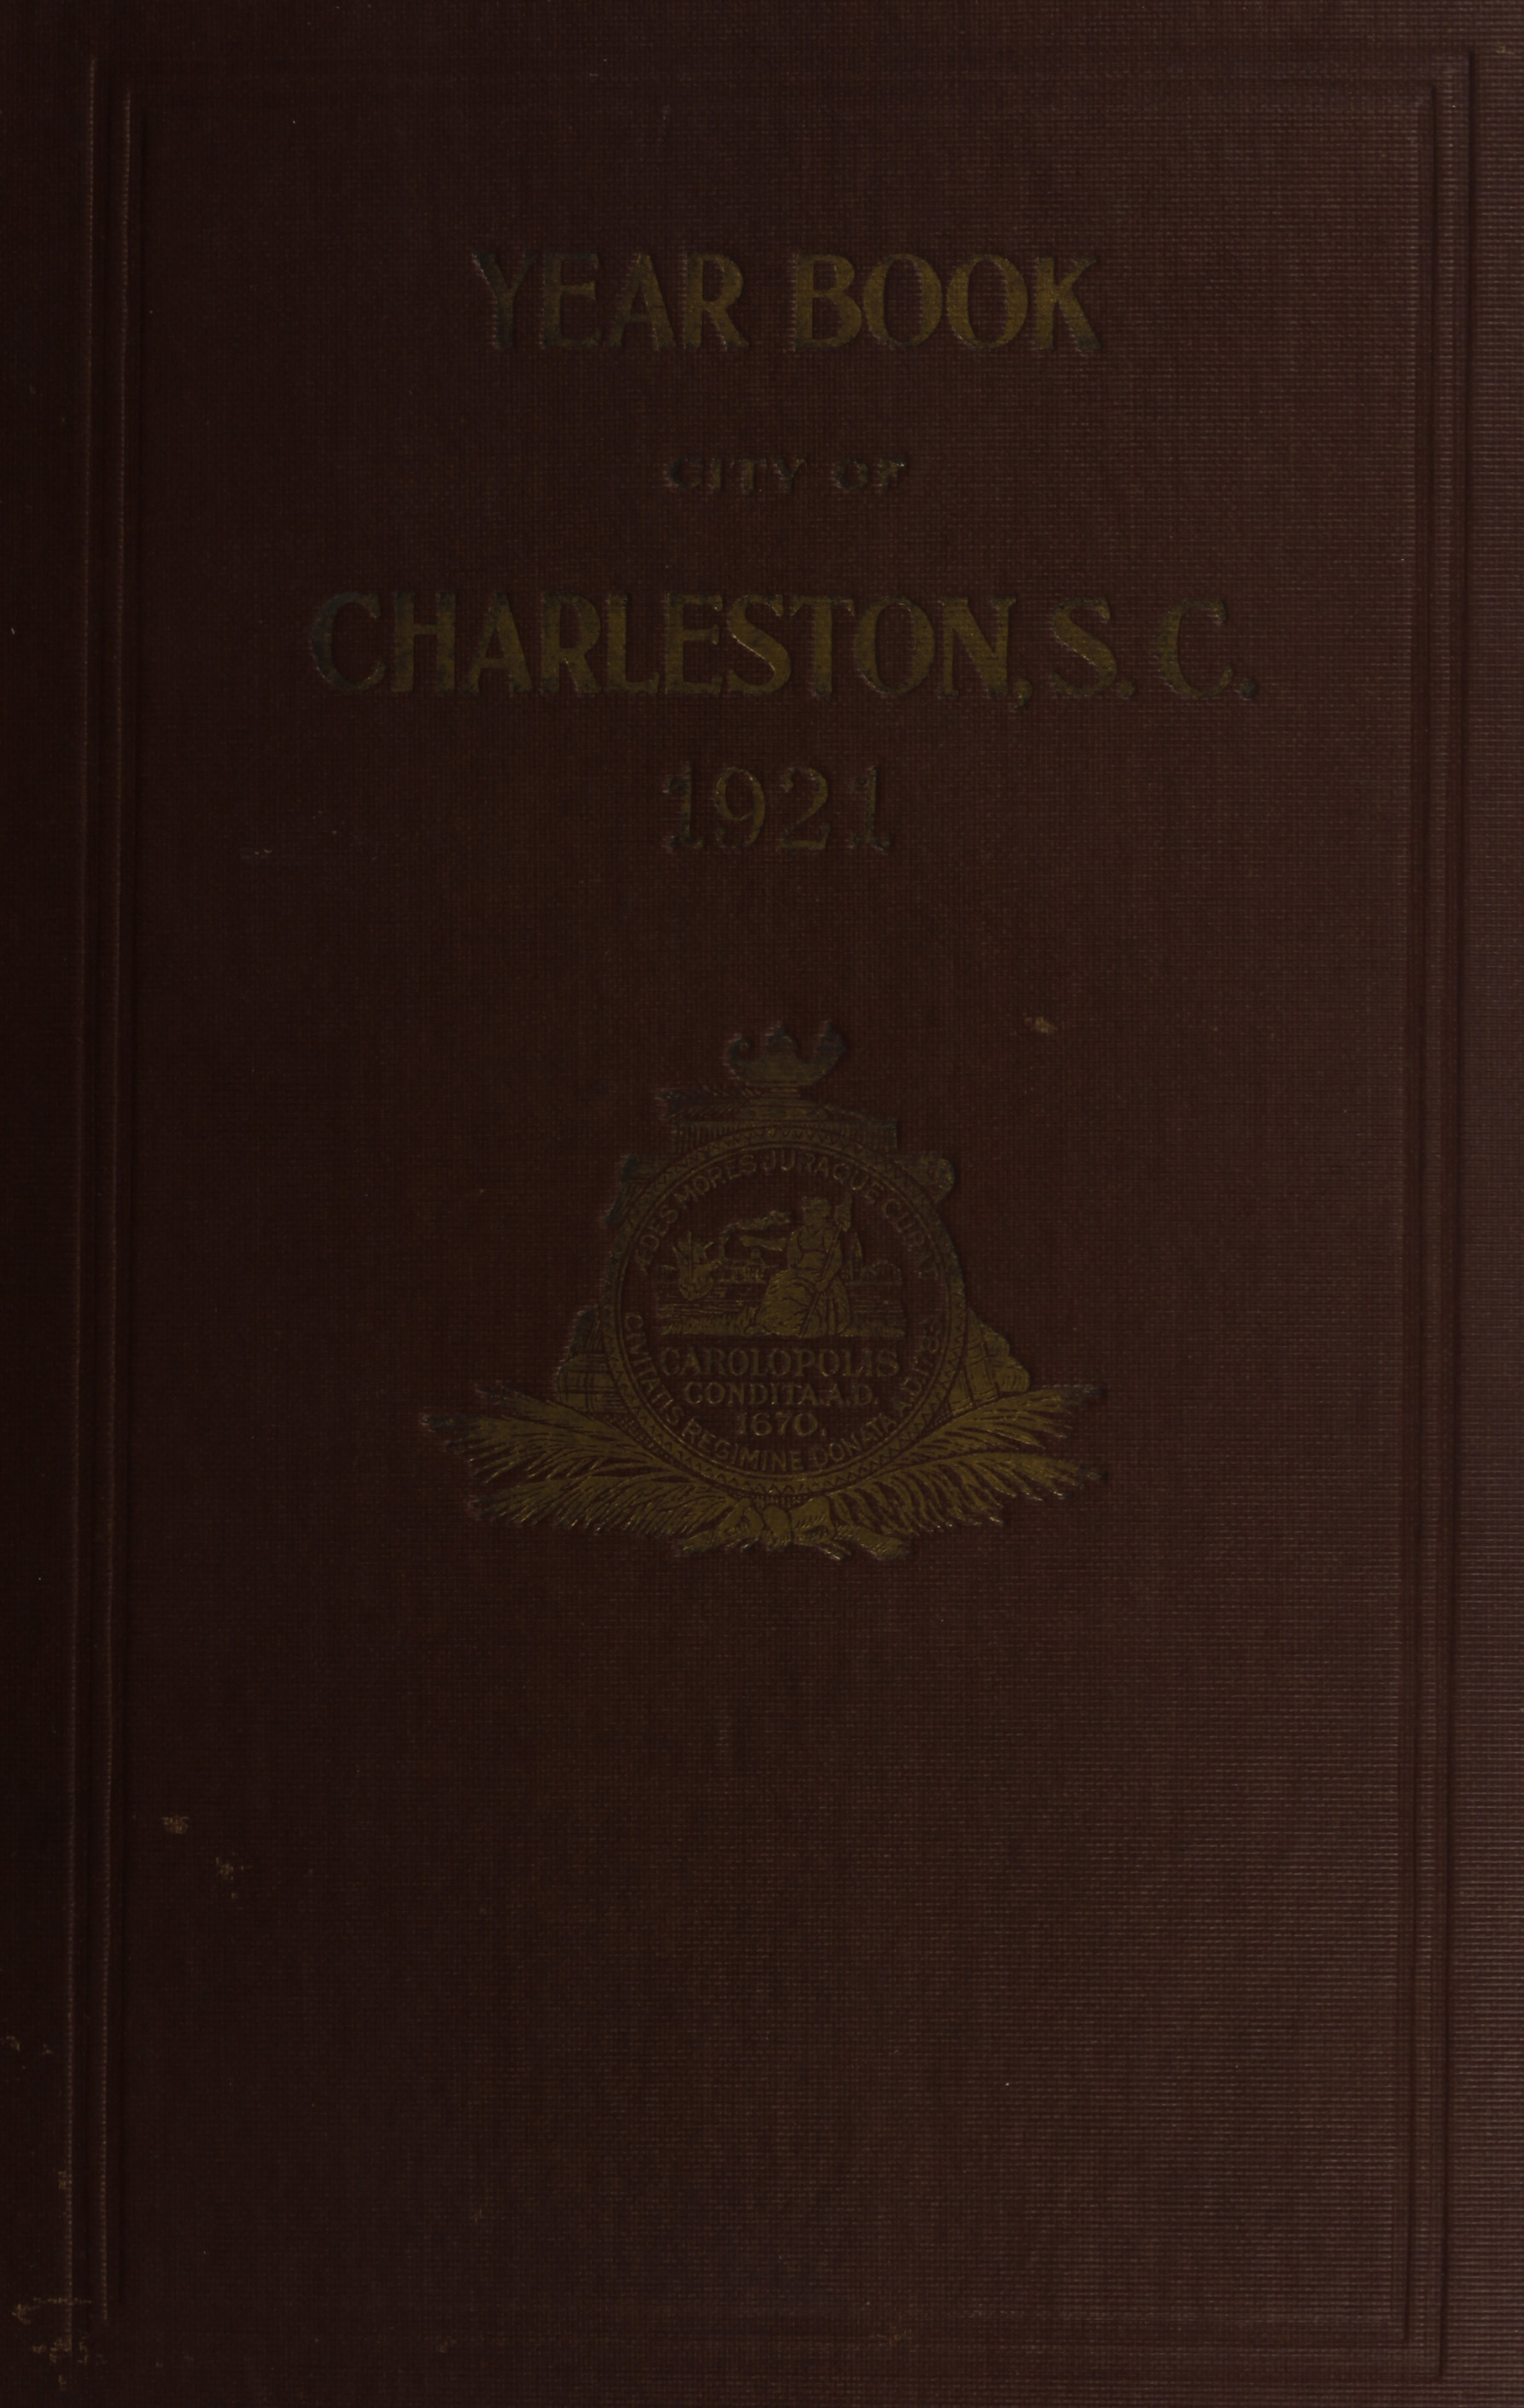 Charleston Yearbook, 1921, cover